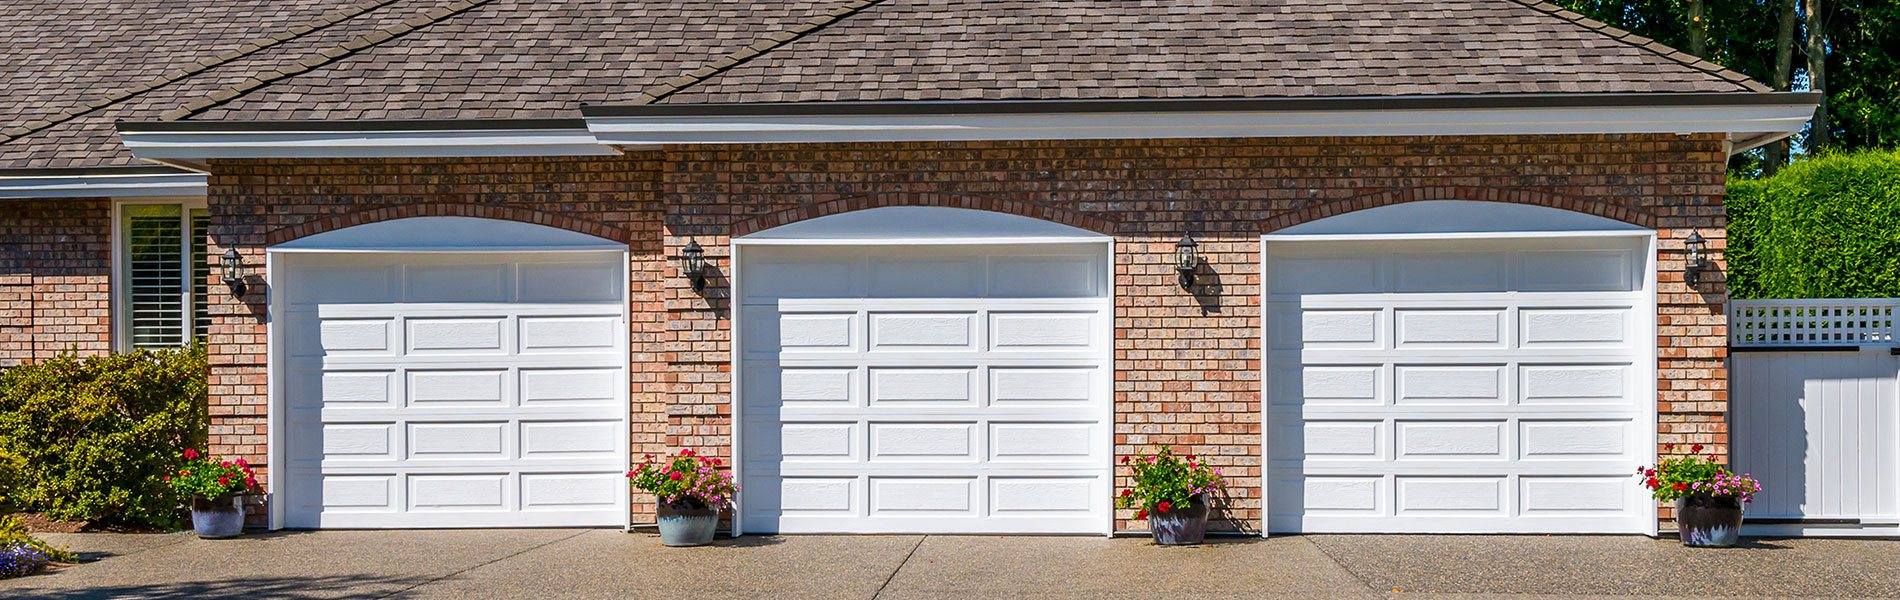 Galaxy Garage Door Service, Fort Worth, TX 817-984-3067